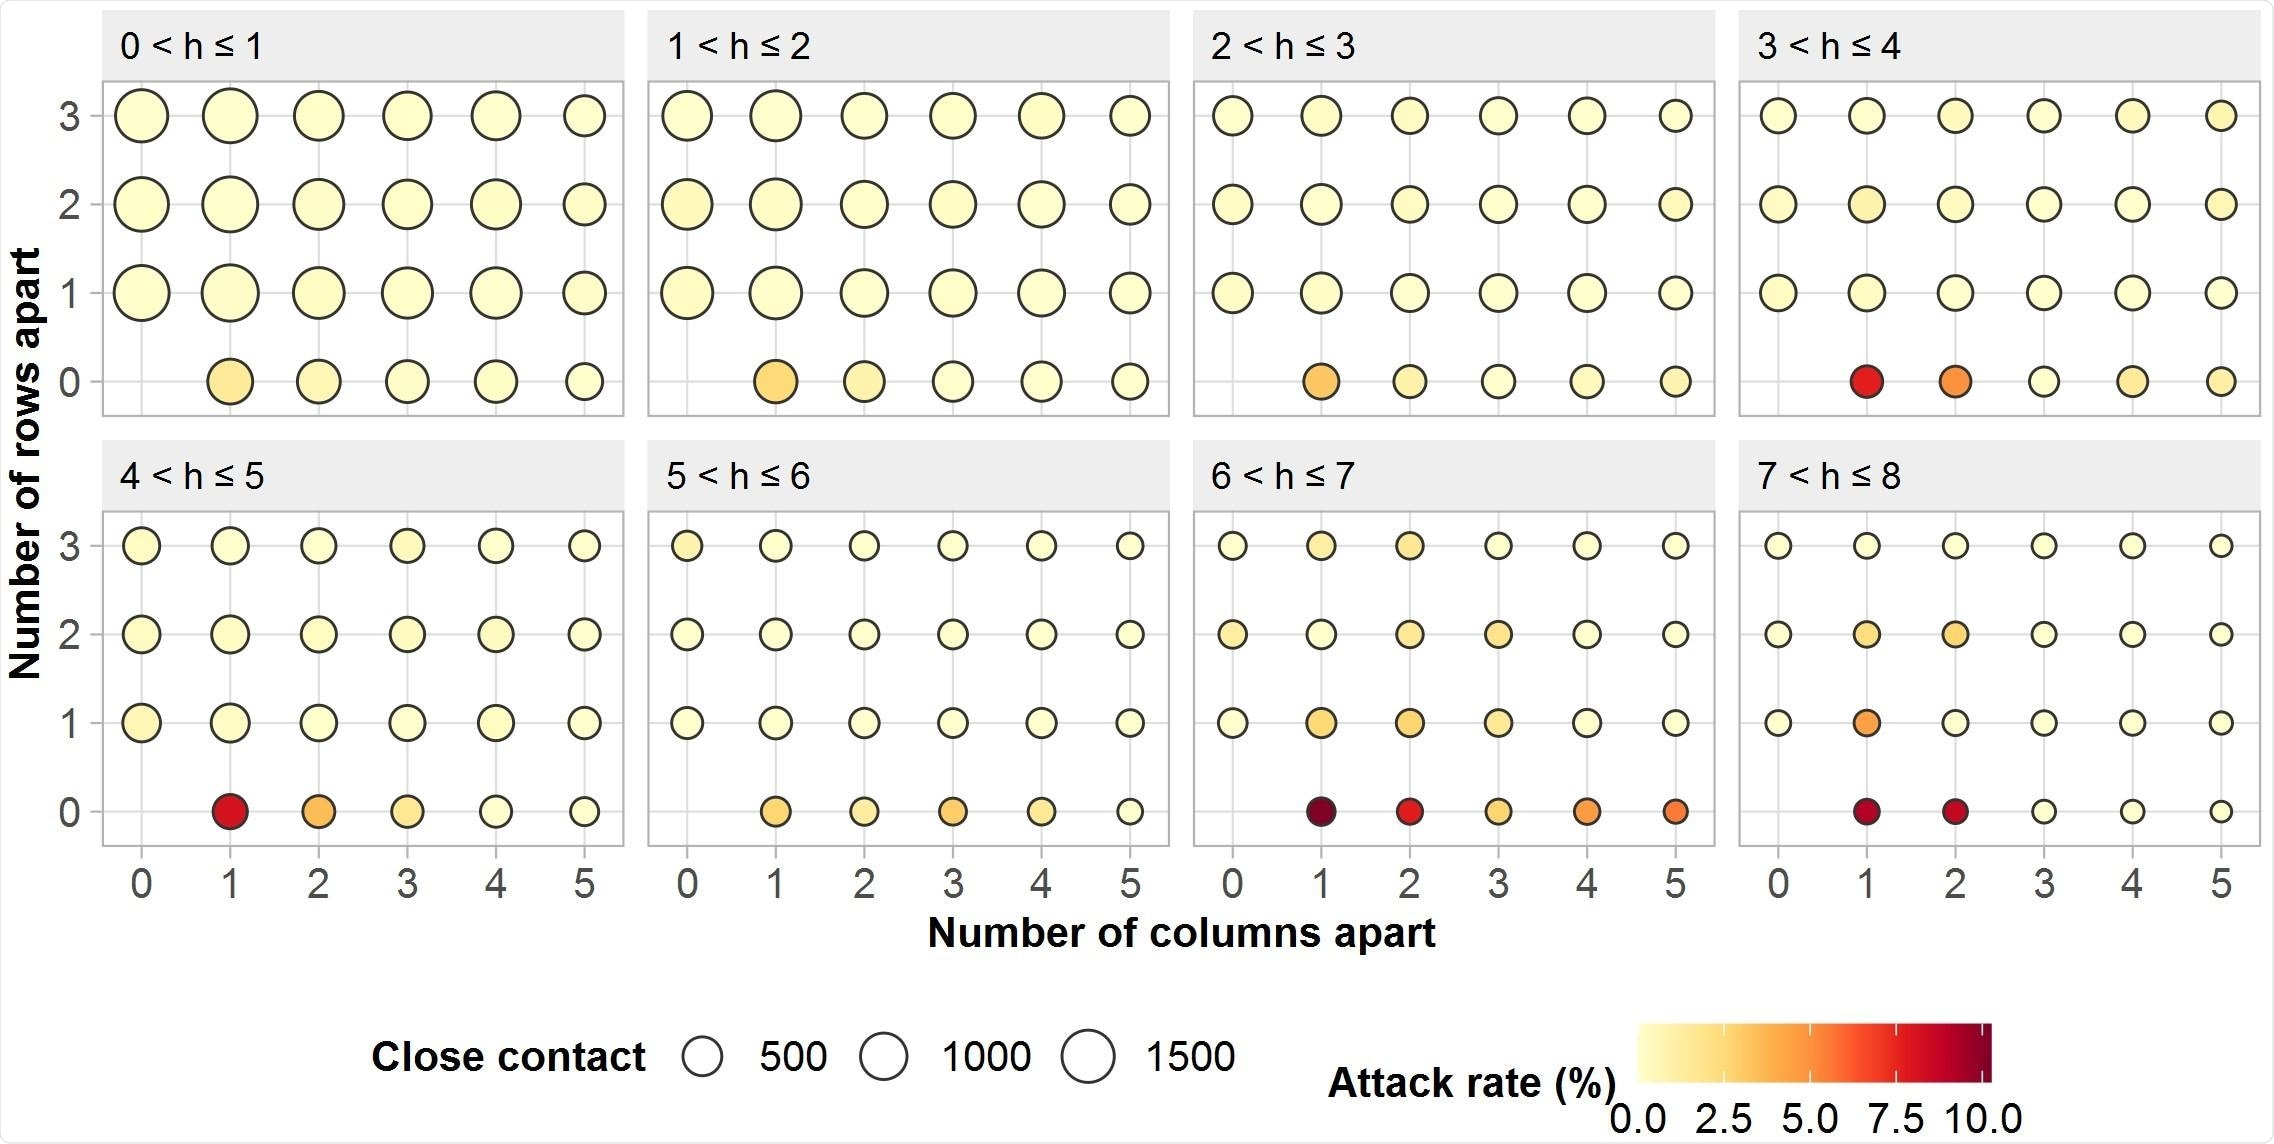 Attack rate of COVID-19 per different seats/co-travel time on train.